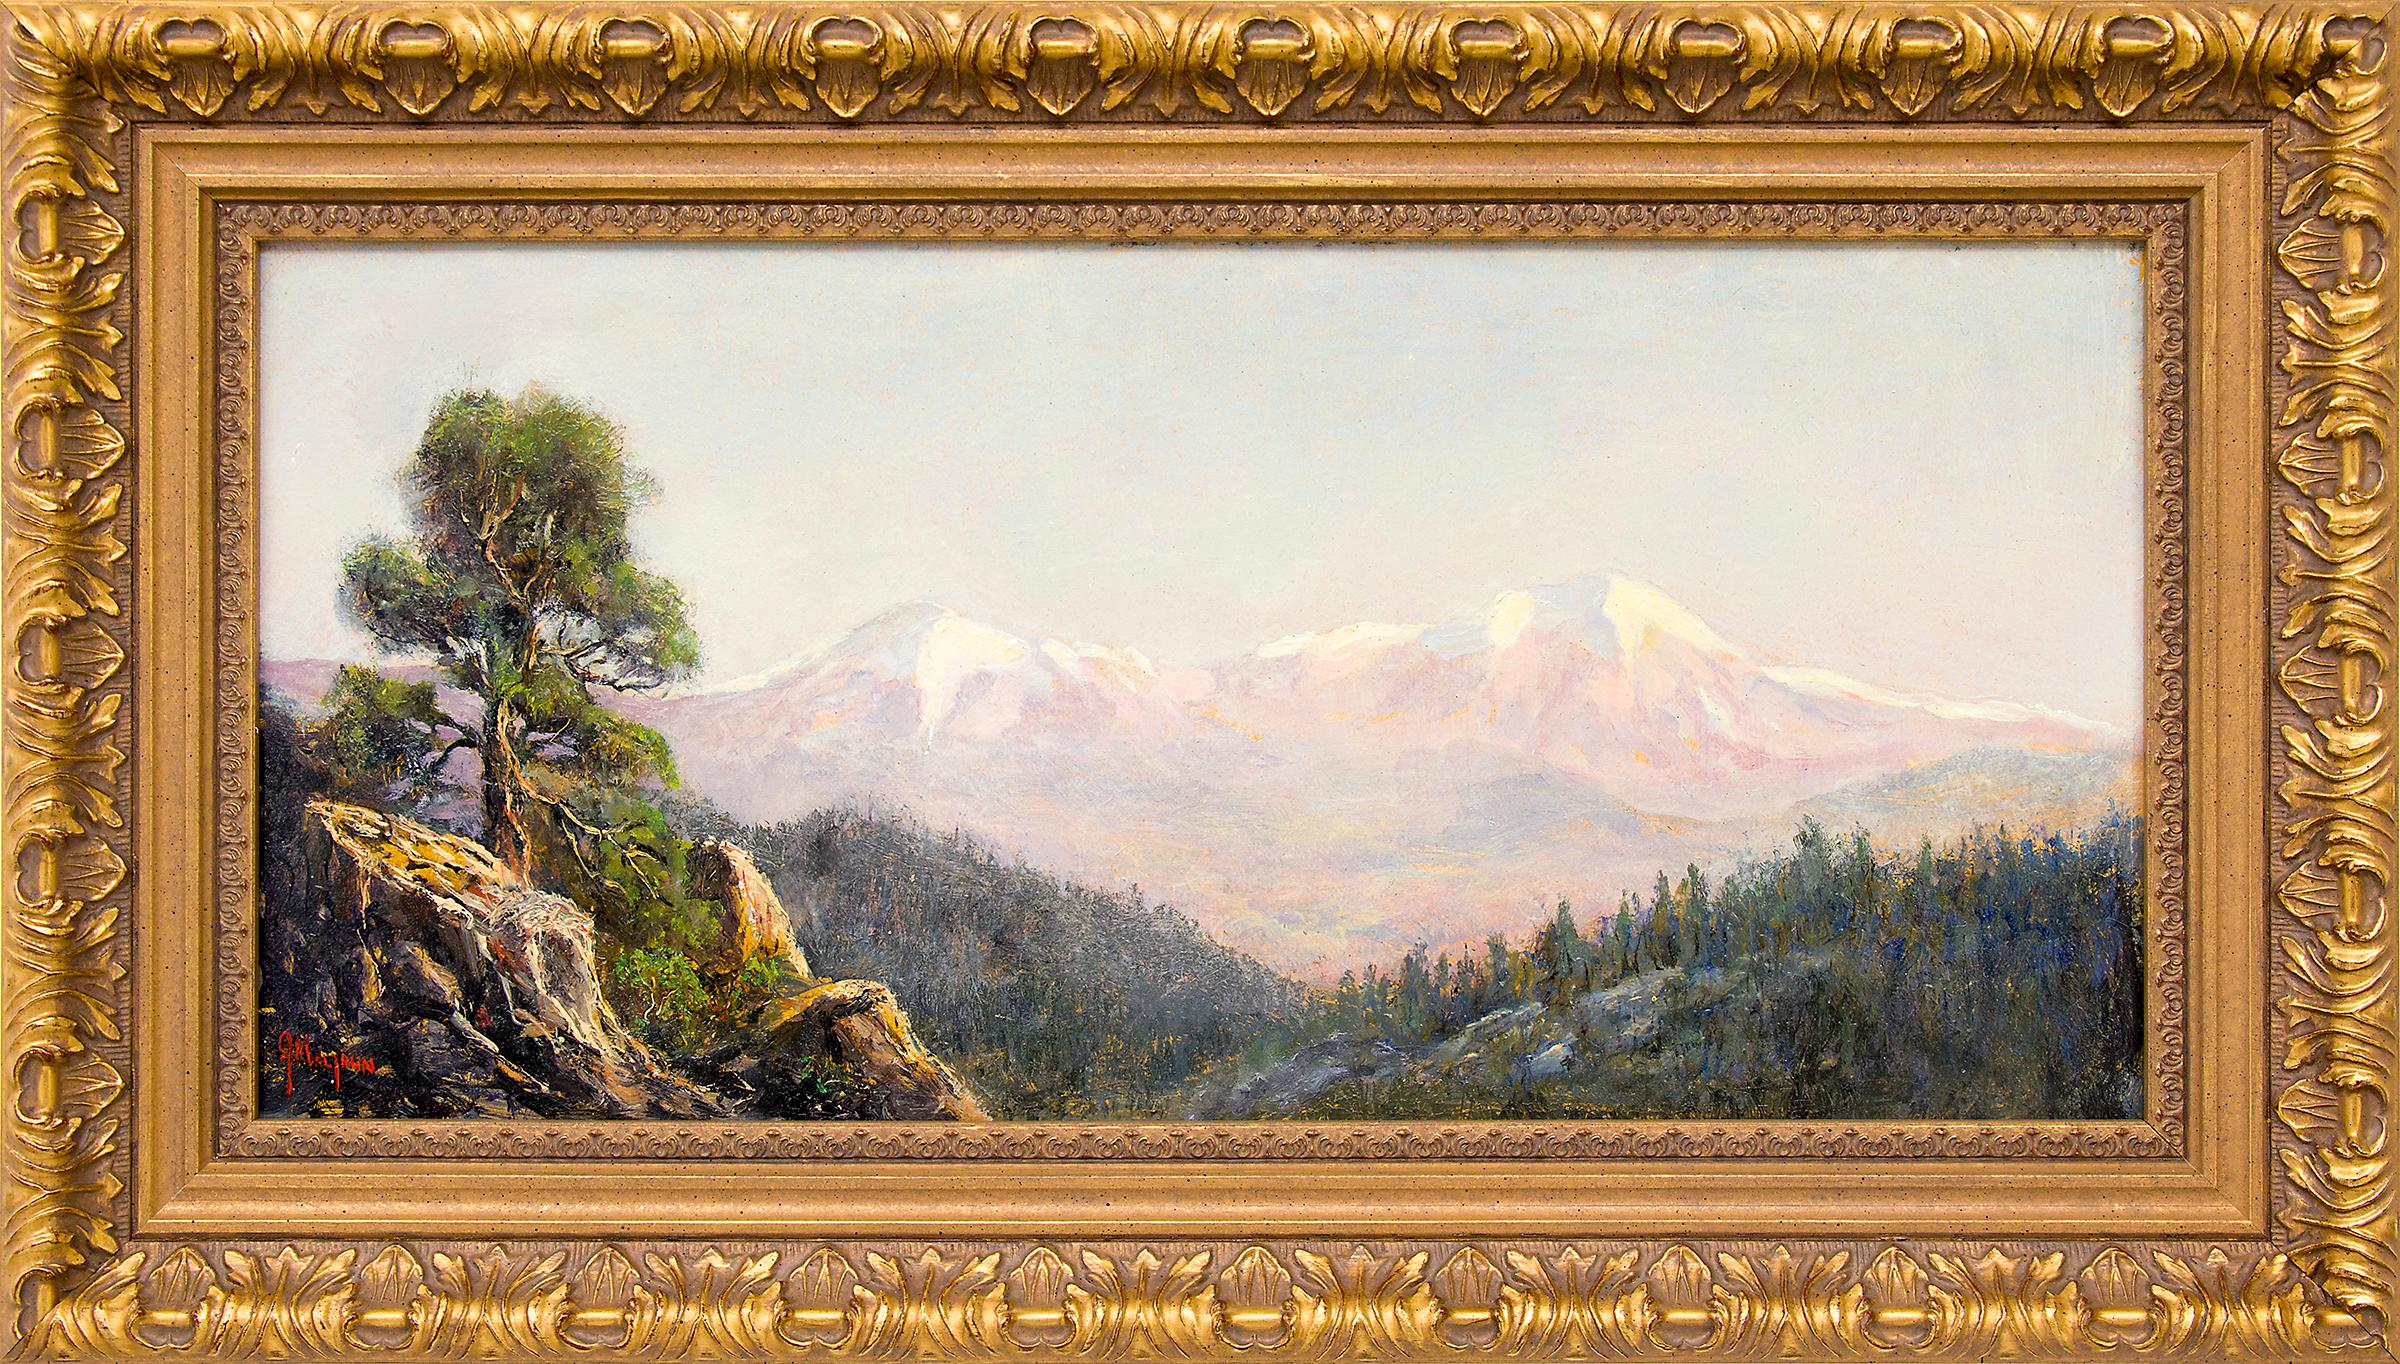 Spanish Peaks (Traditional Colorado Mountain Landscape with Snowcapped Peaks)